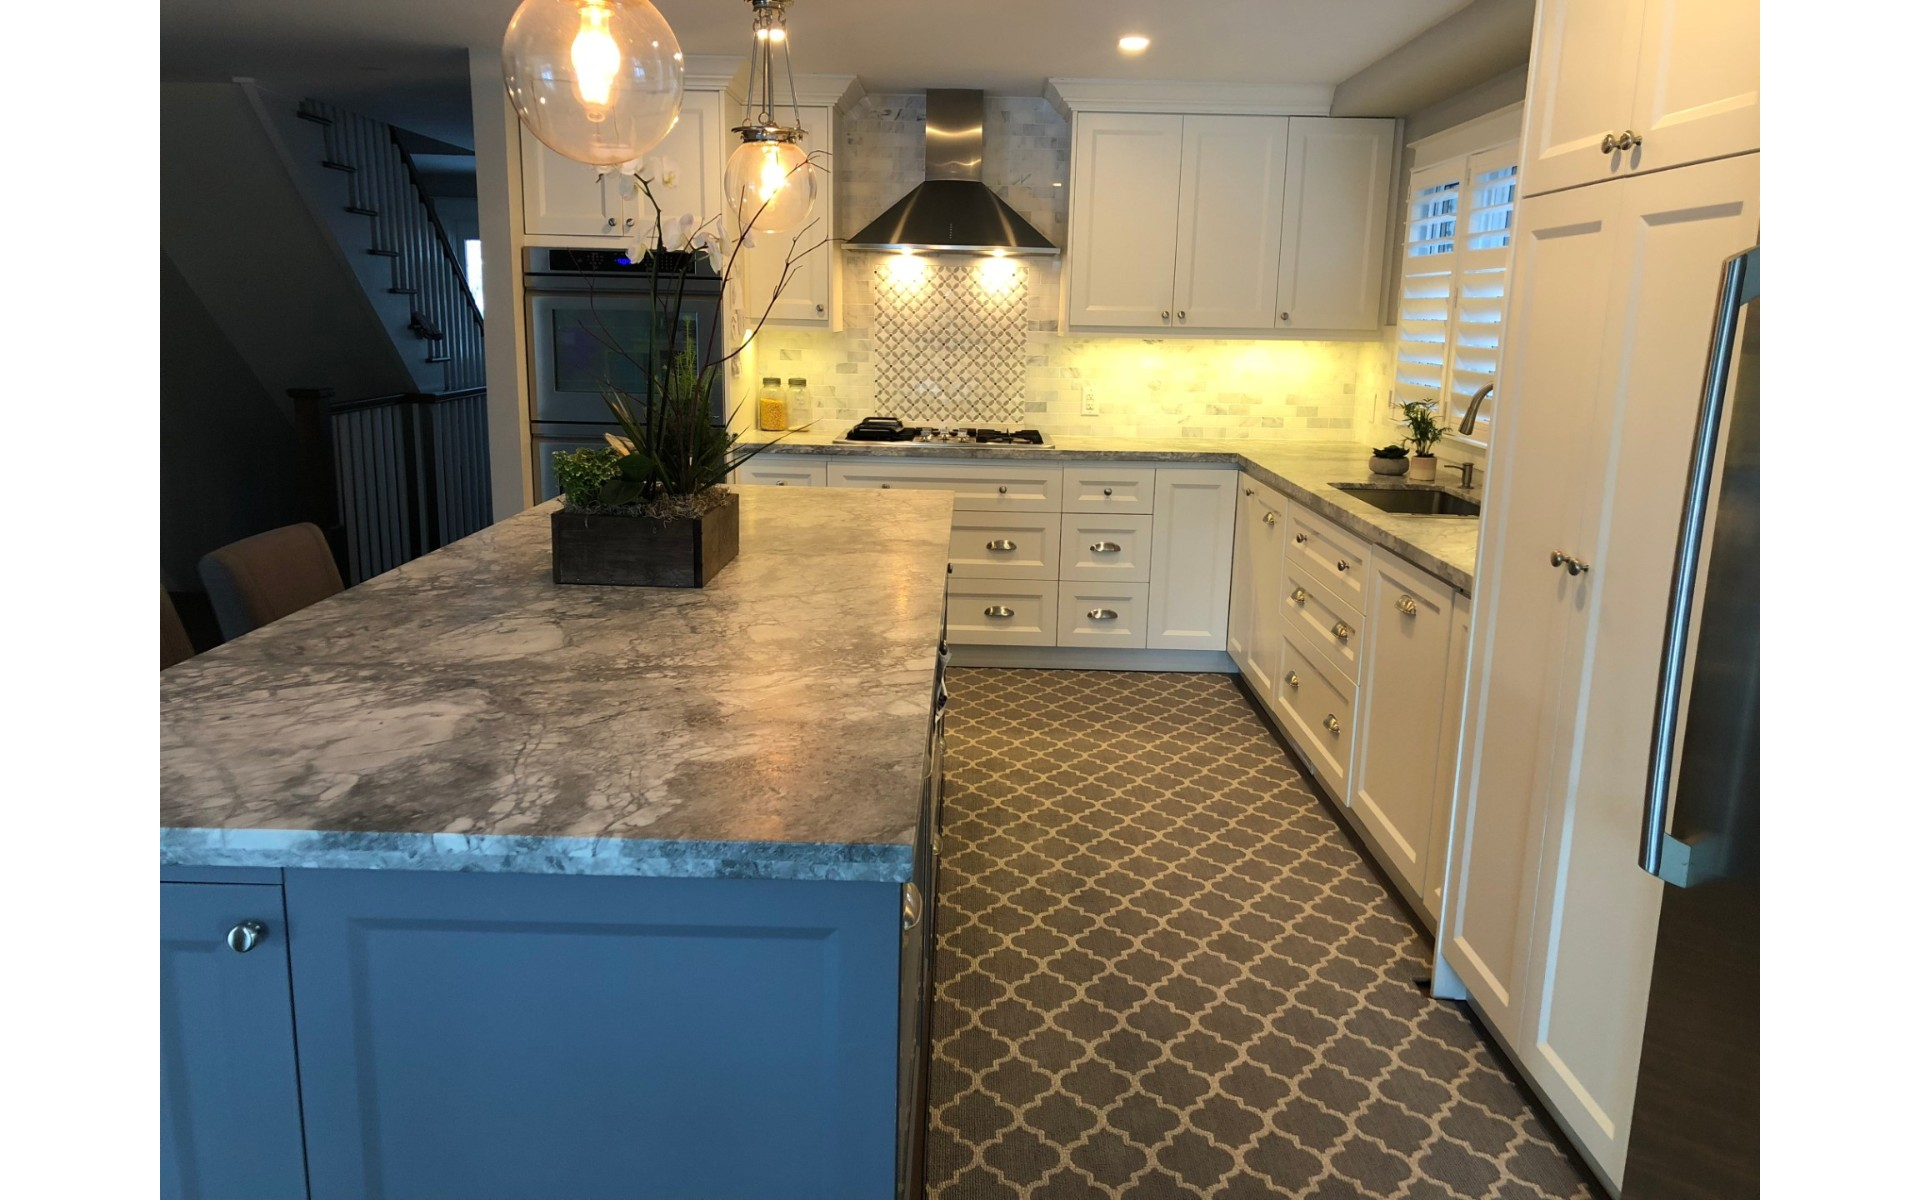 Kitchen with white cabinets, dark checked floor and stone countertop